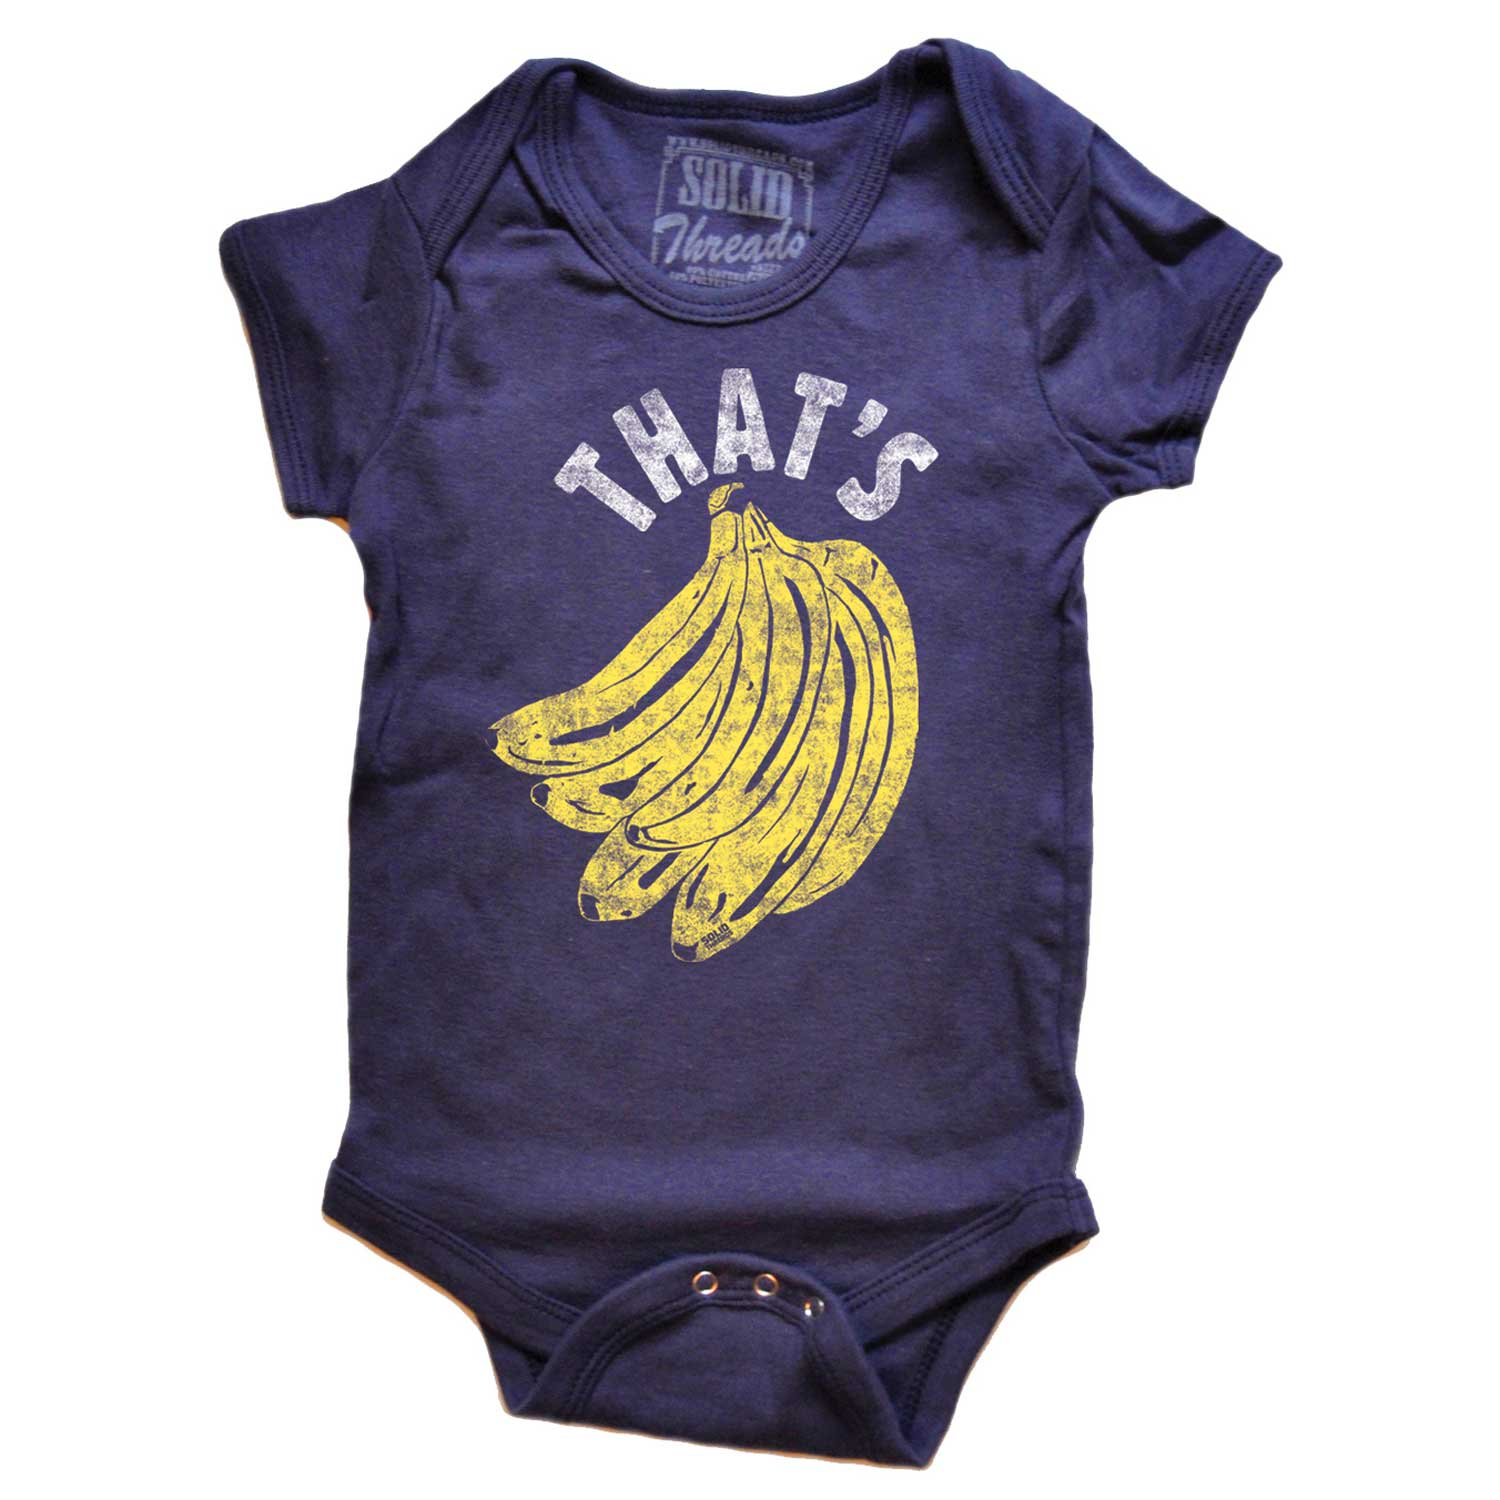 Baby That's Bananas One Piece Romper